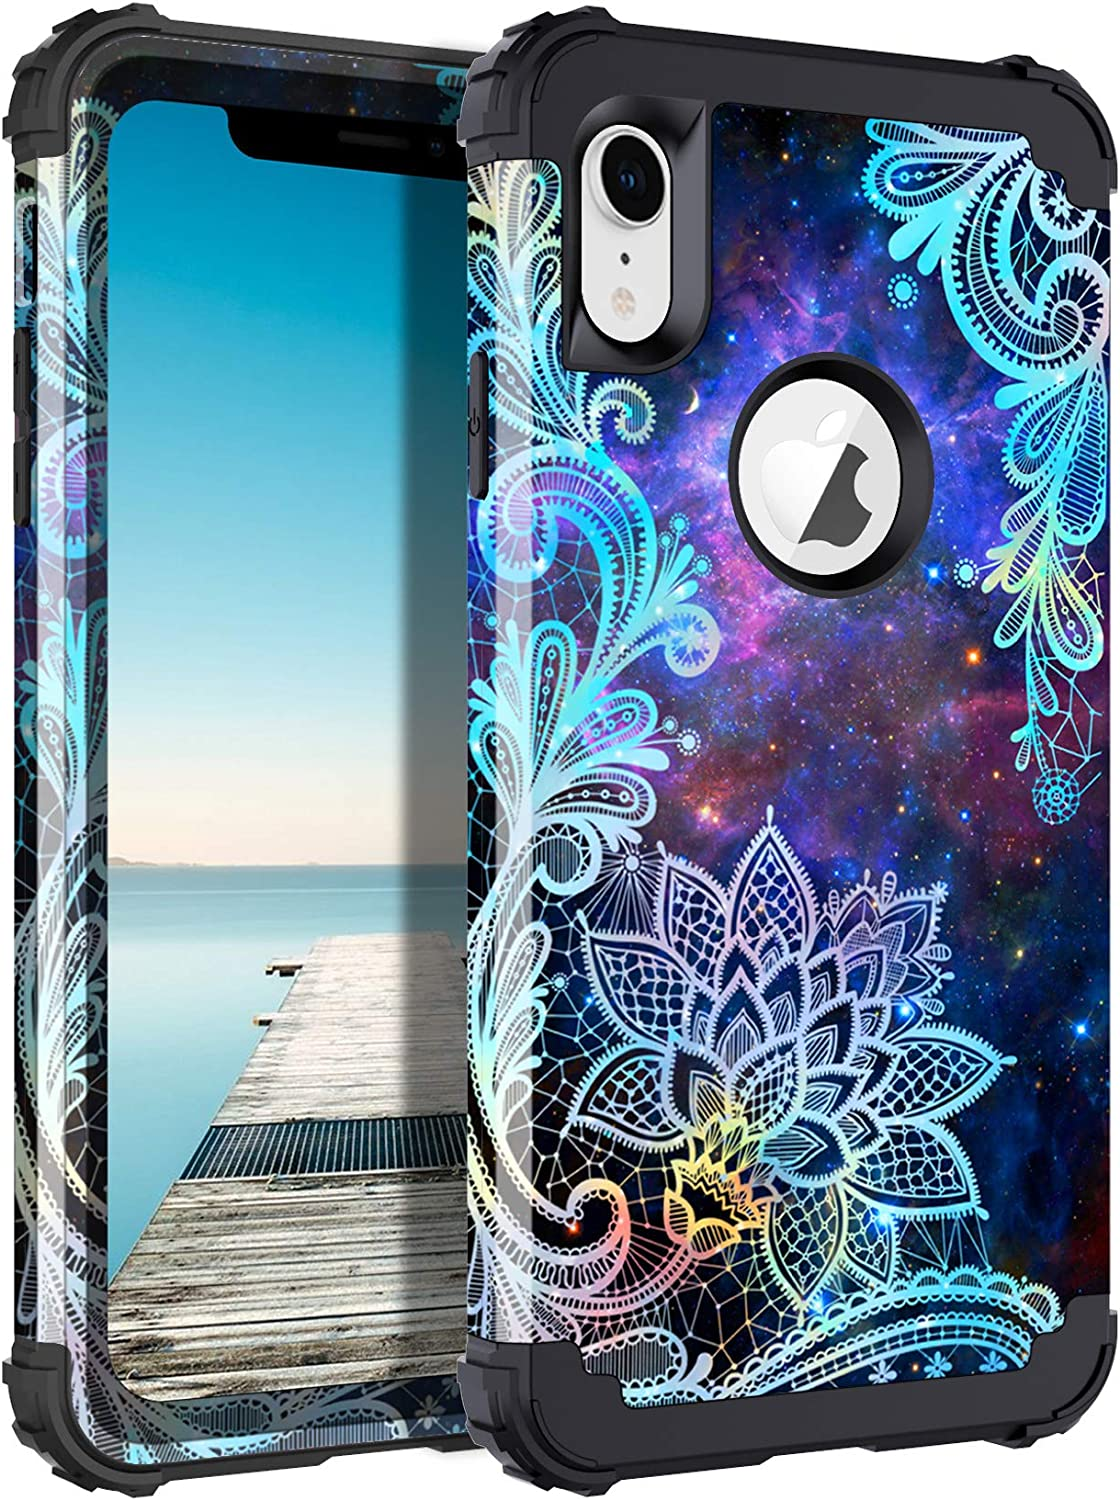 Casetego Compatible with iPhone XR Case,Floral Three Layer Heavy Duty Hybrid Sturdy Shockproof Protective Cover Case for Apple iPhone XR,Mandala